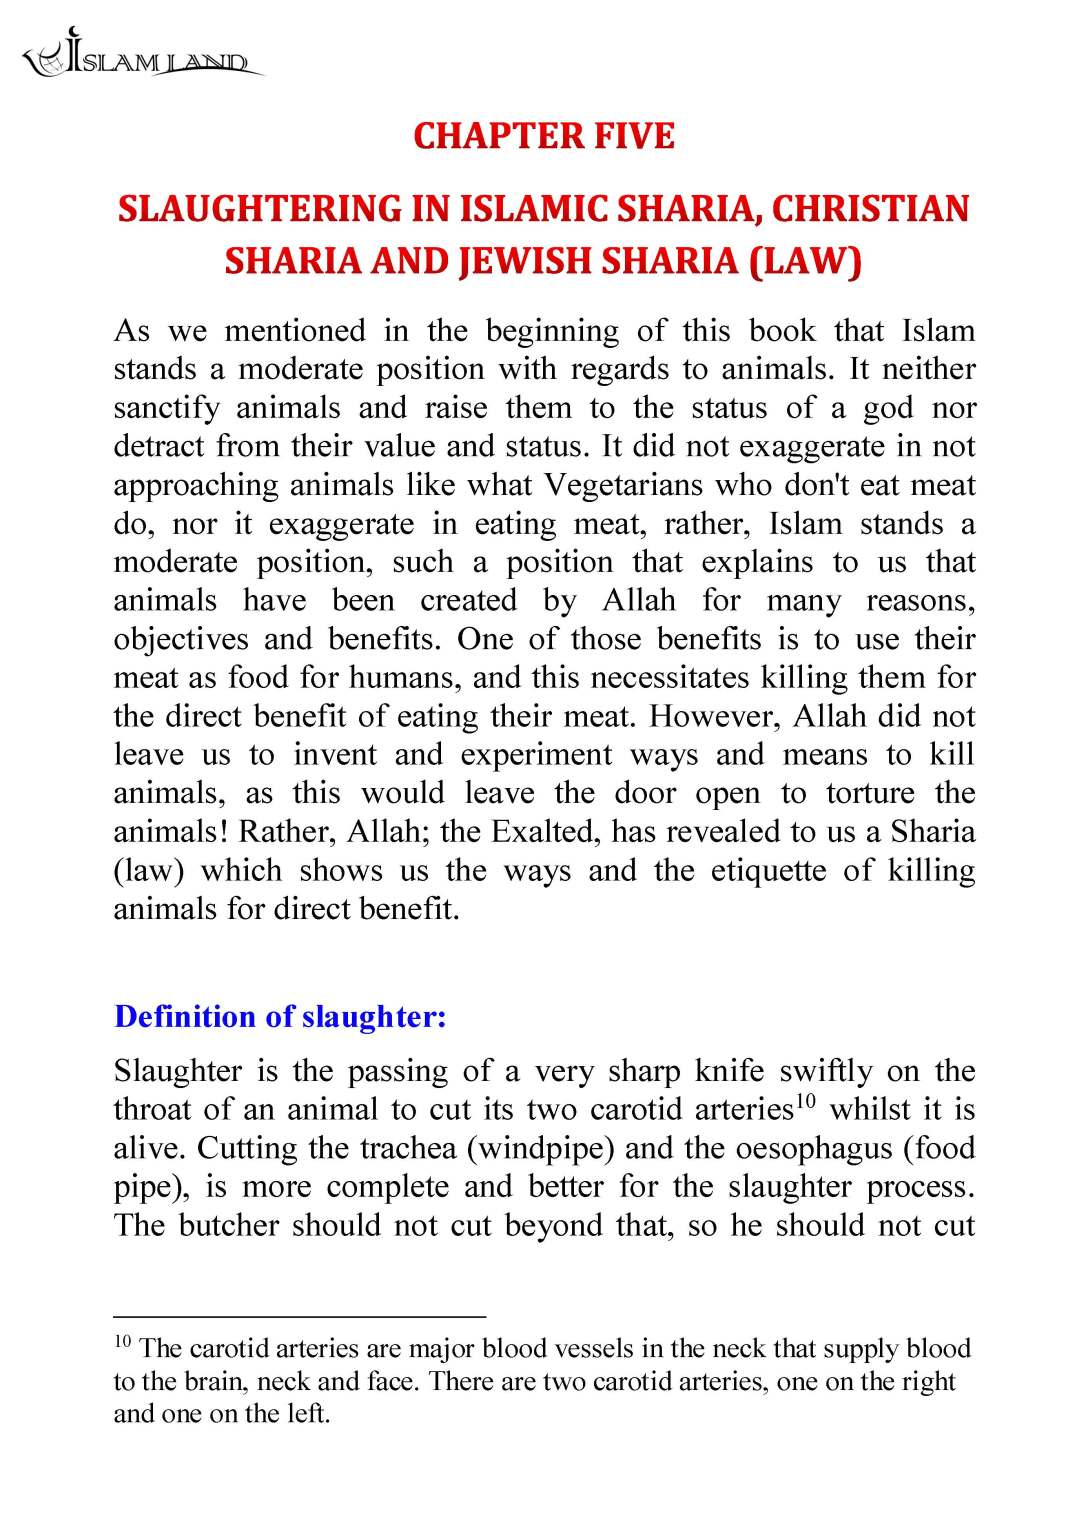 en_ANIMAL_RIGHTS_IN_ISLAMIC_CHRISTIAN_AND_JEWISH_SHARIA_LAW_Page_28